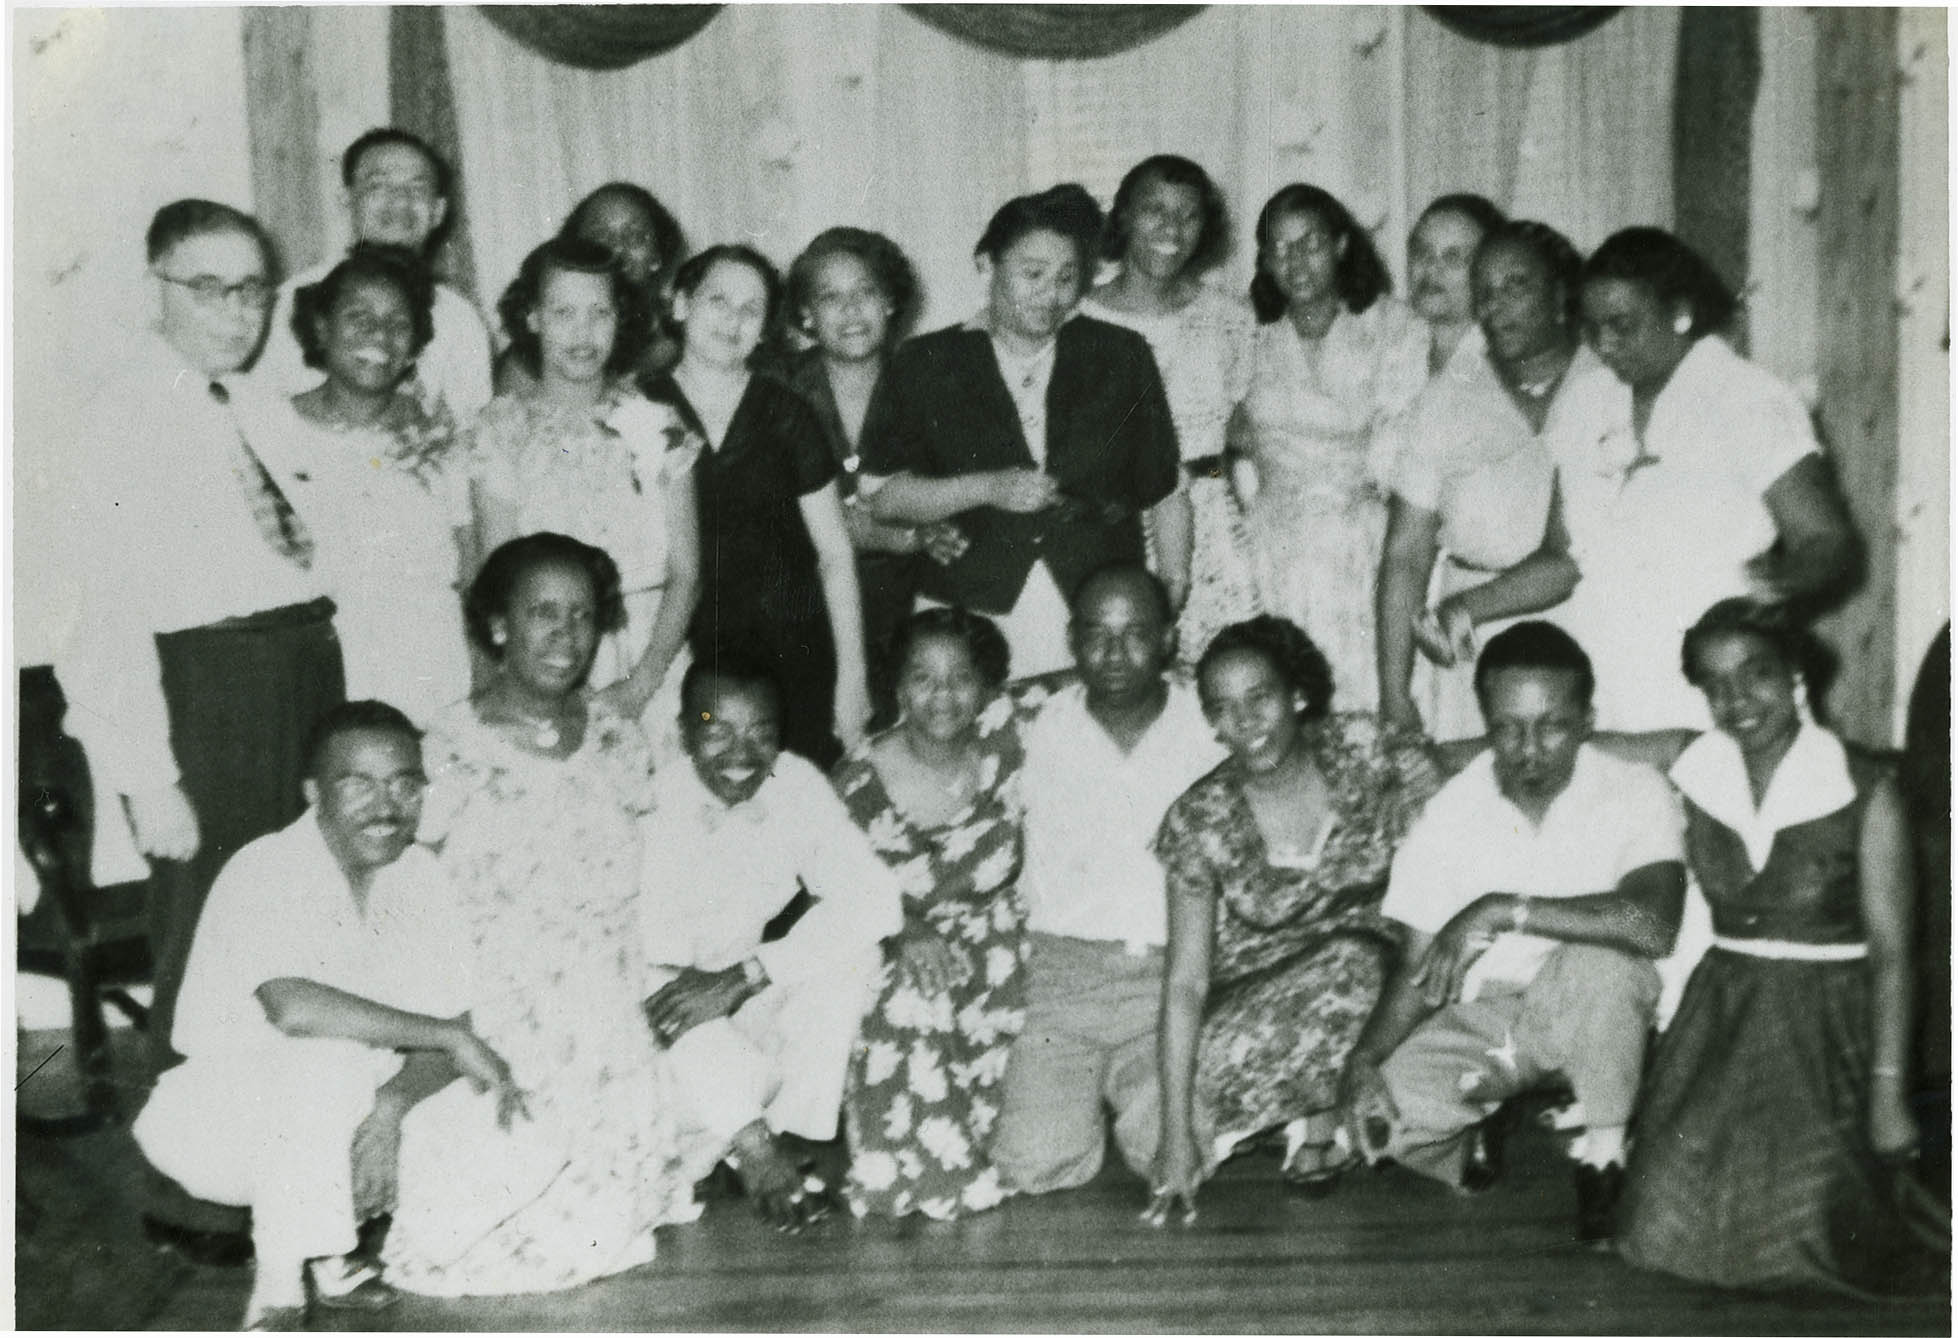 Reunion of the Avery Institute's Class of 1932